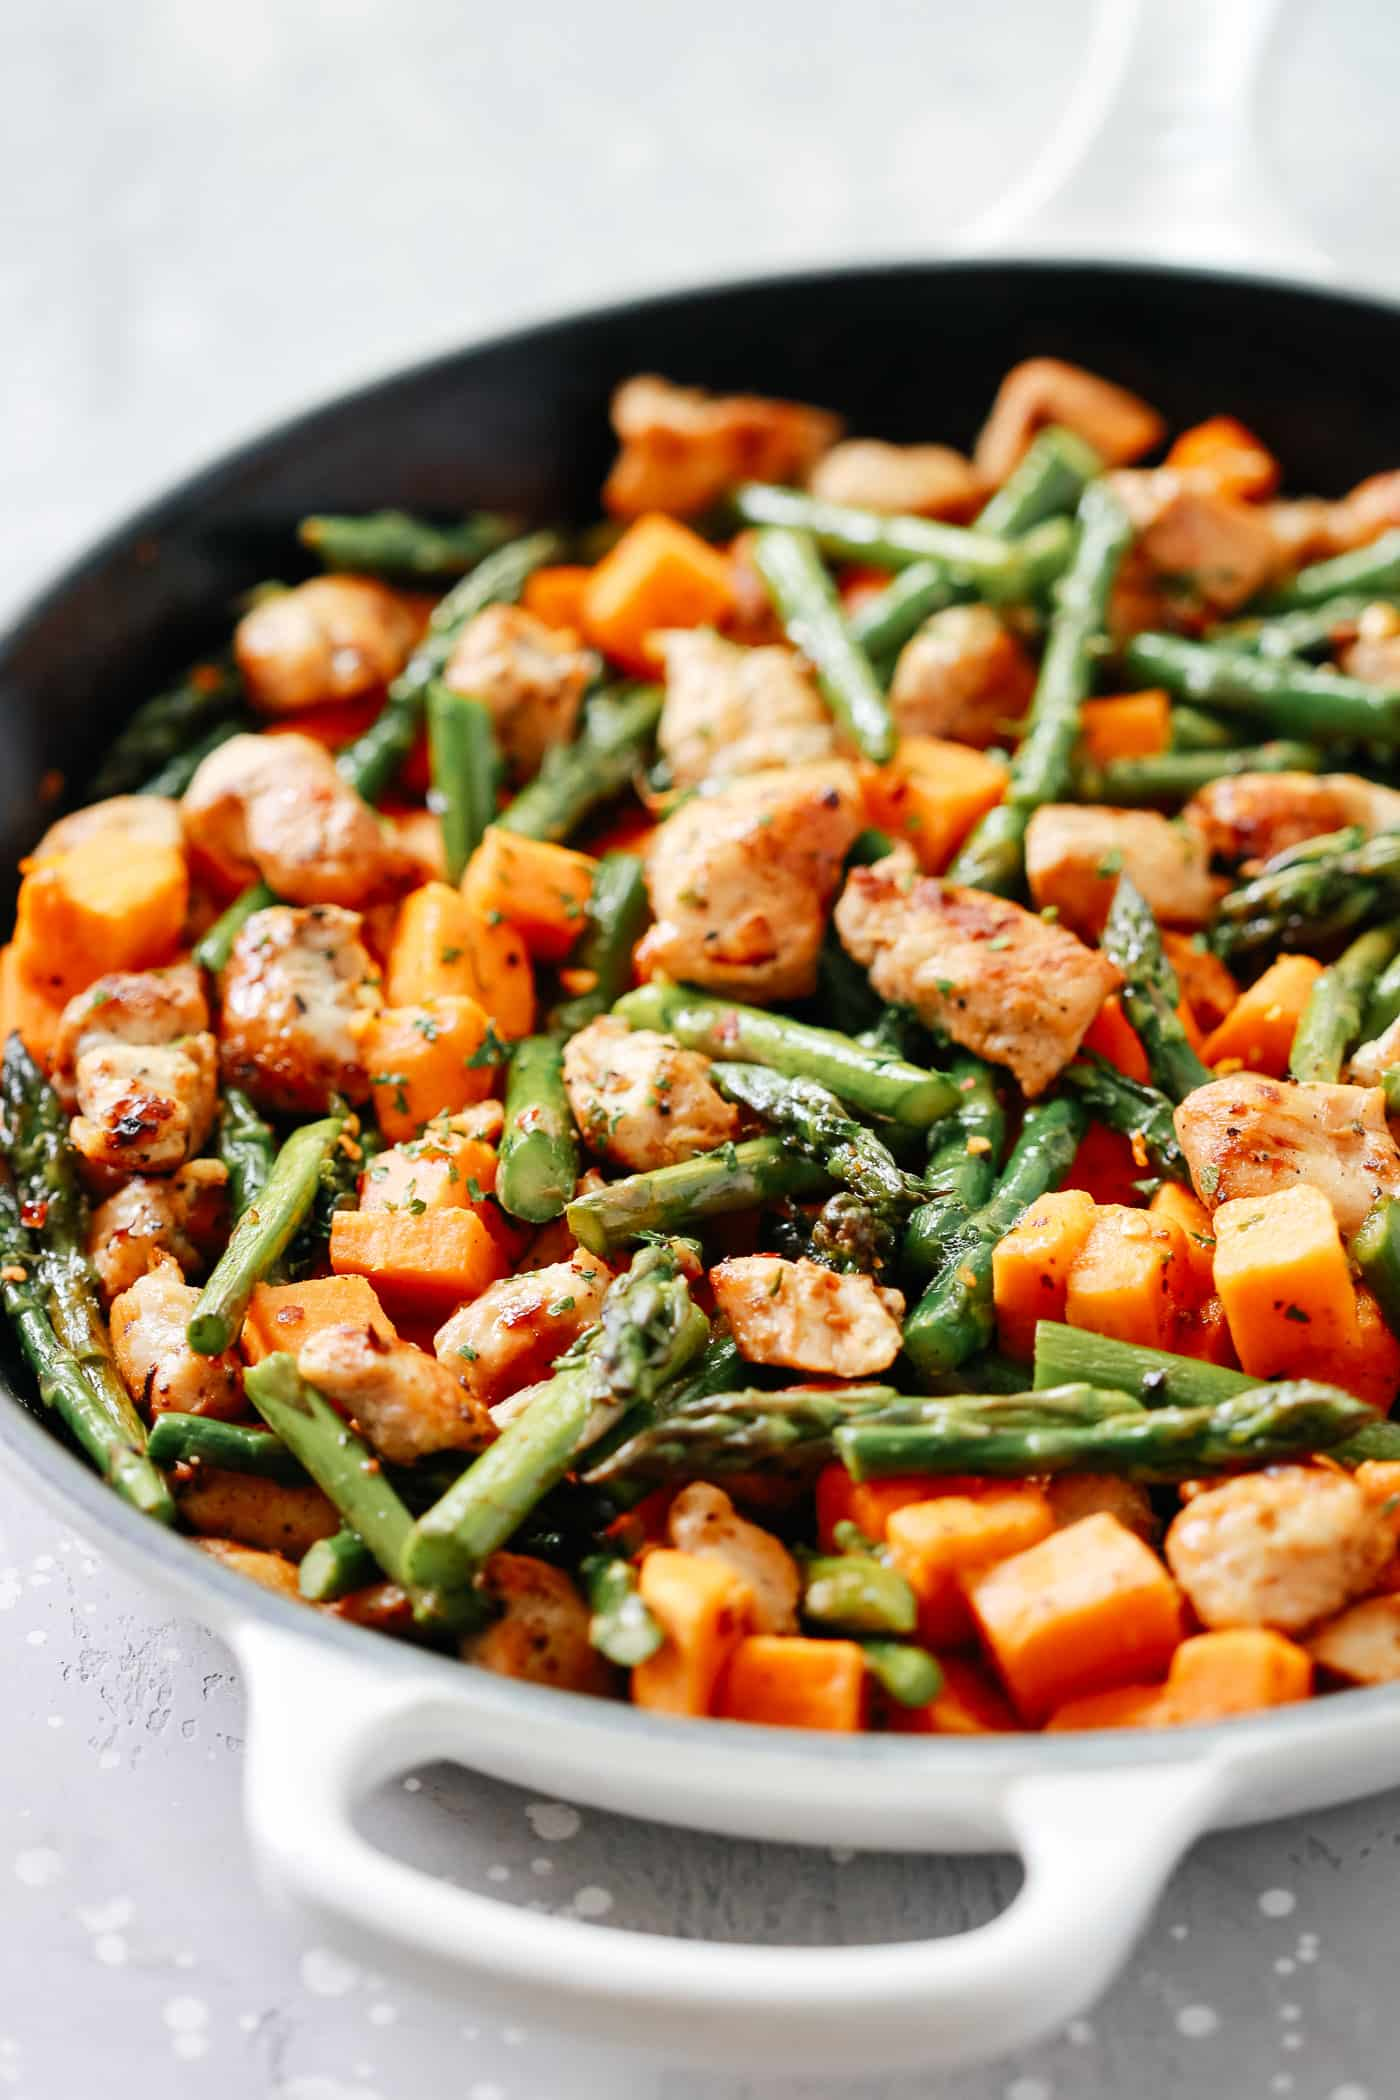 #9 Asparagus Sweet Potato Chicken Skillet